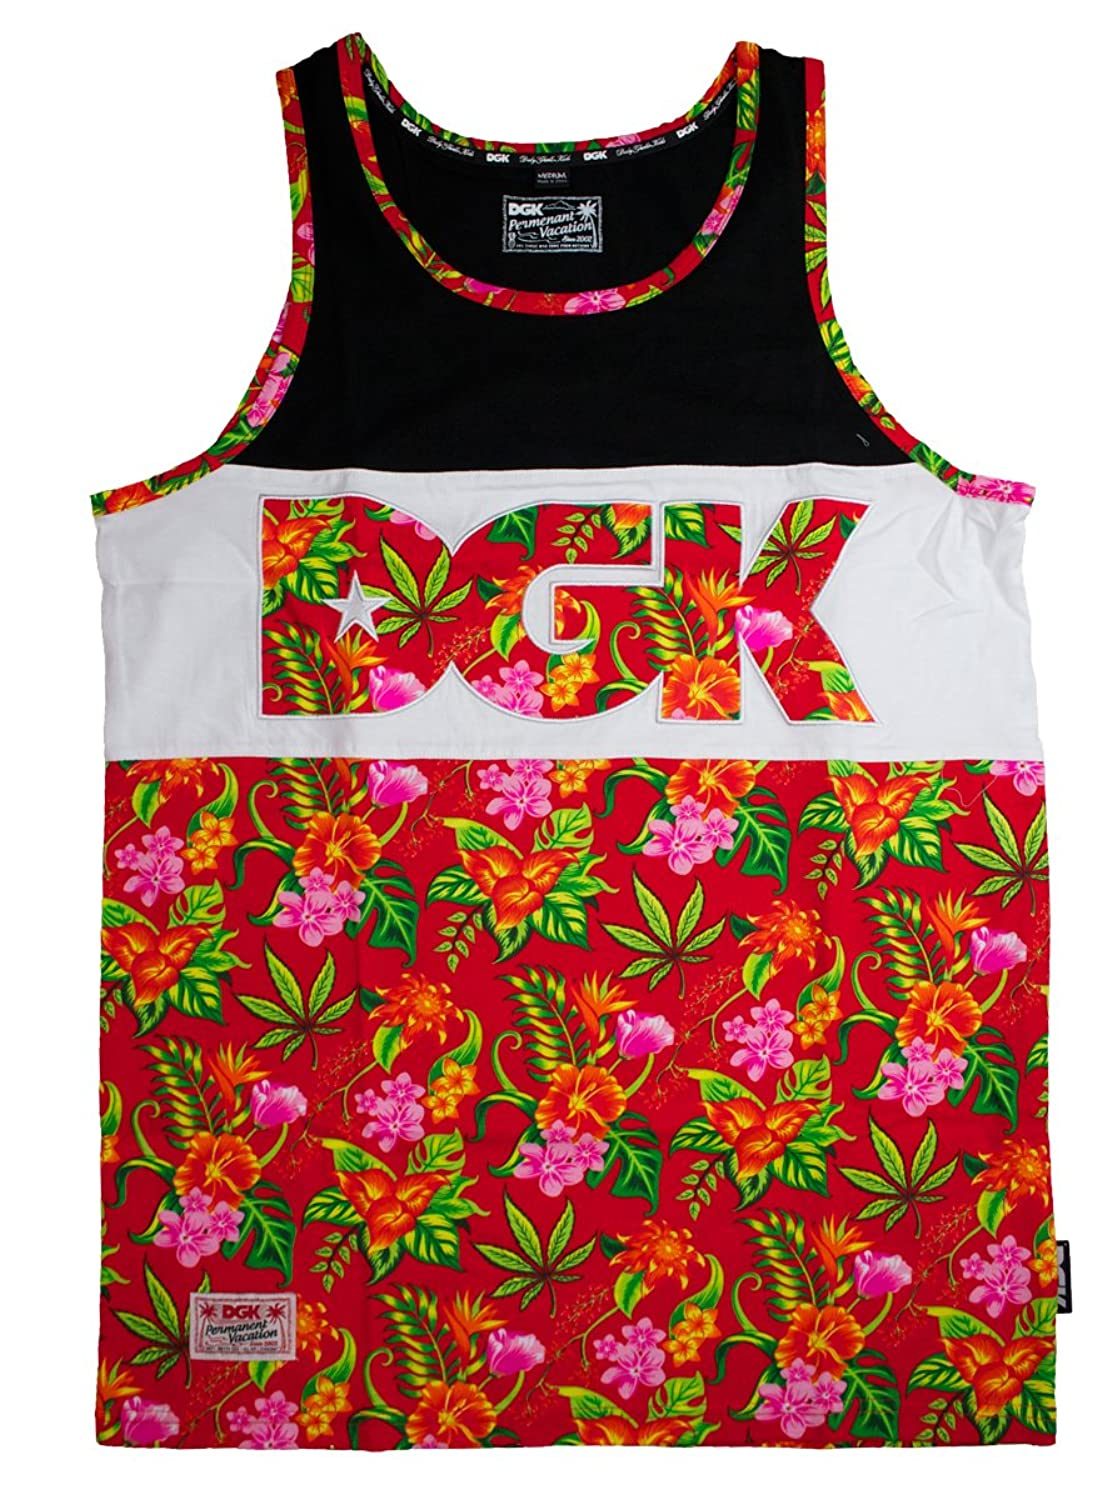 DGK Men's SleevelessVest Multicoloured Botanik